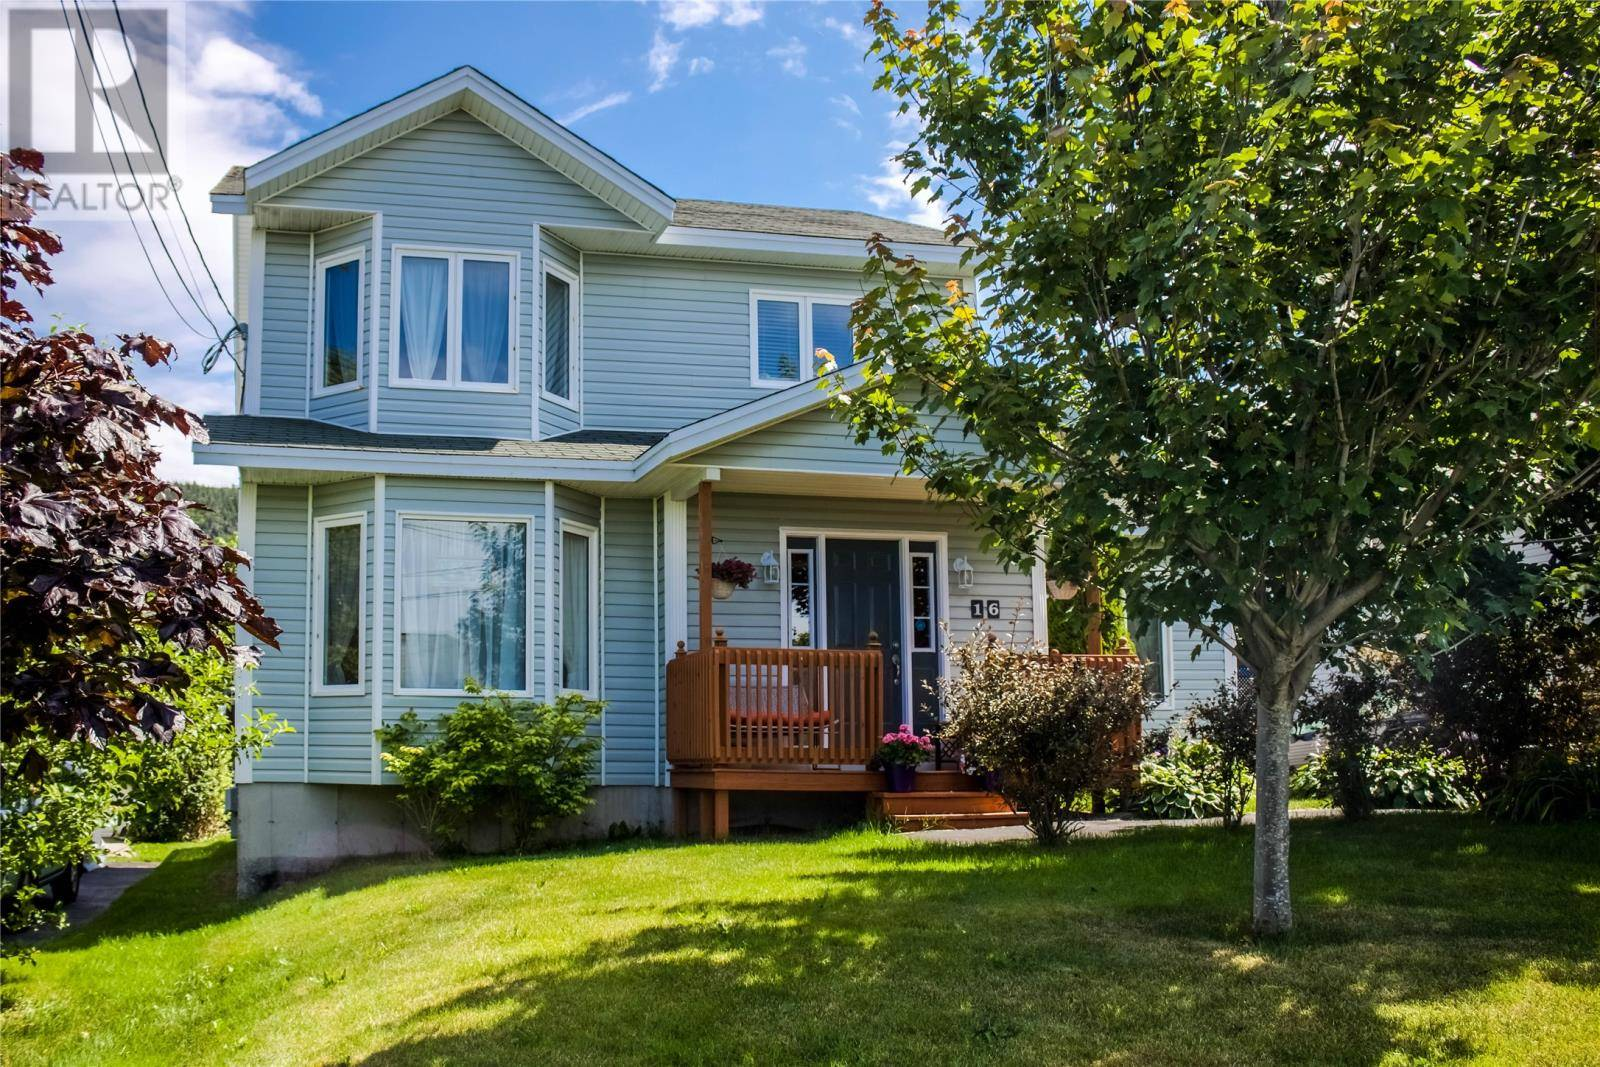 House for sale at 16 Carters Ln Conception Bay South Newfoundland - MLS: 1208877